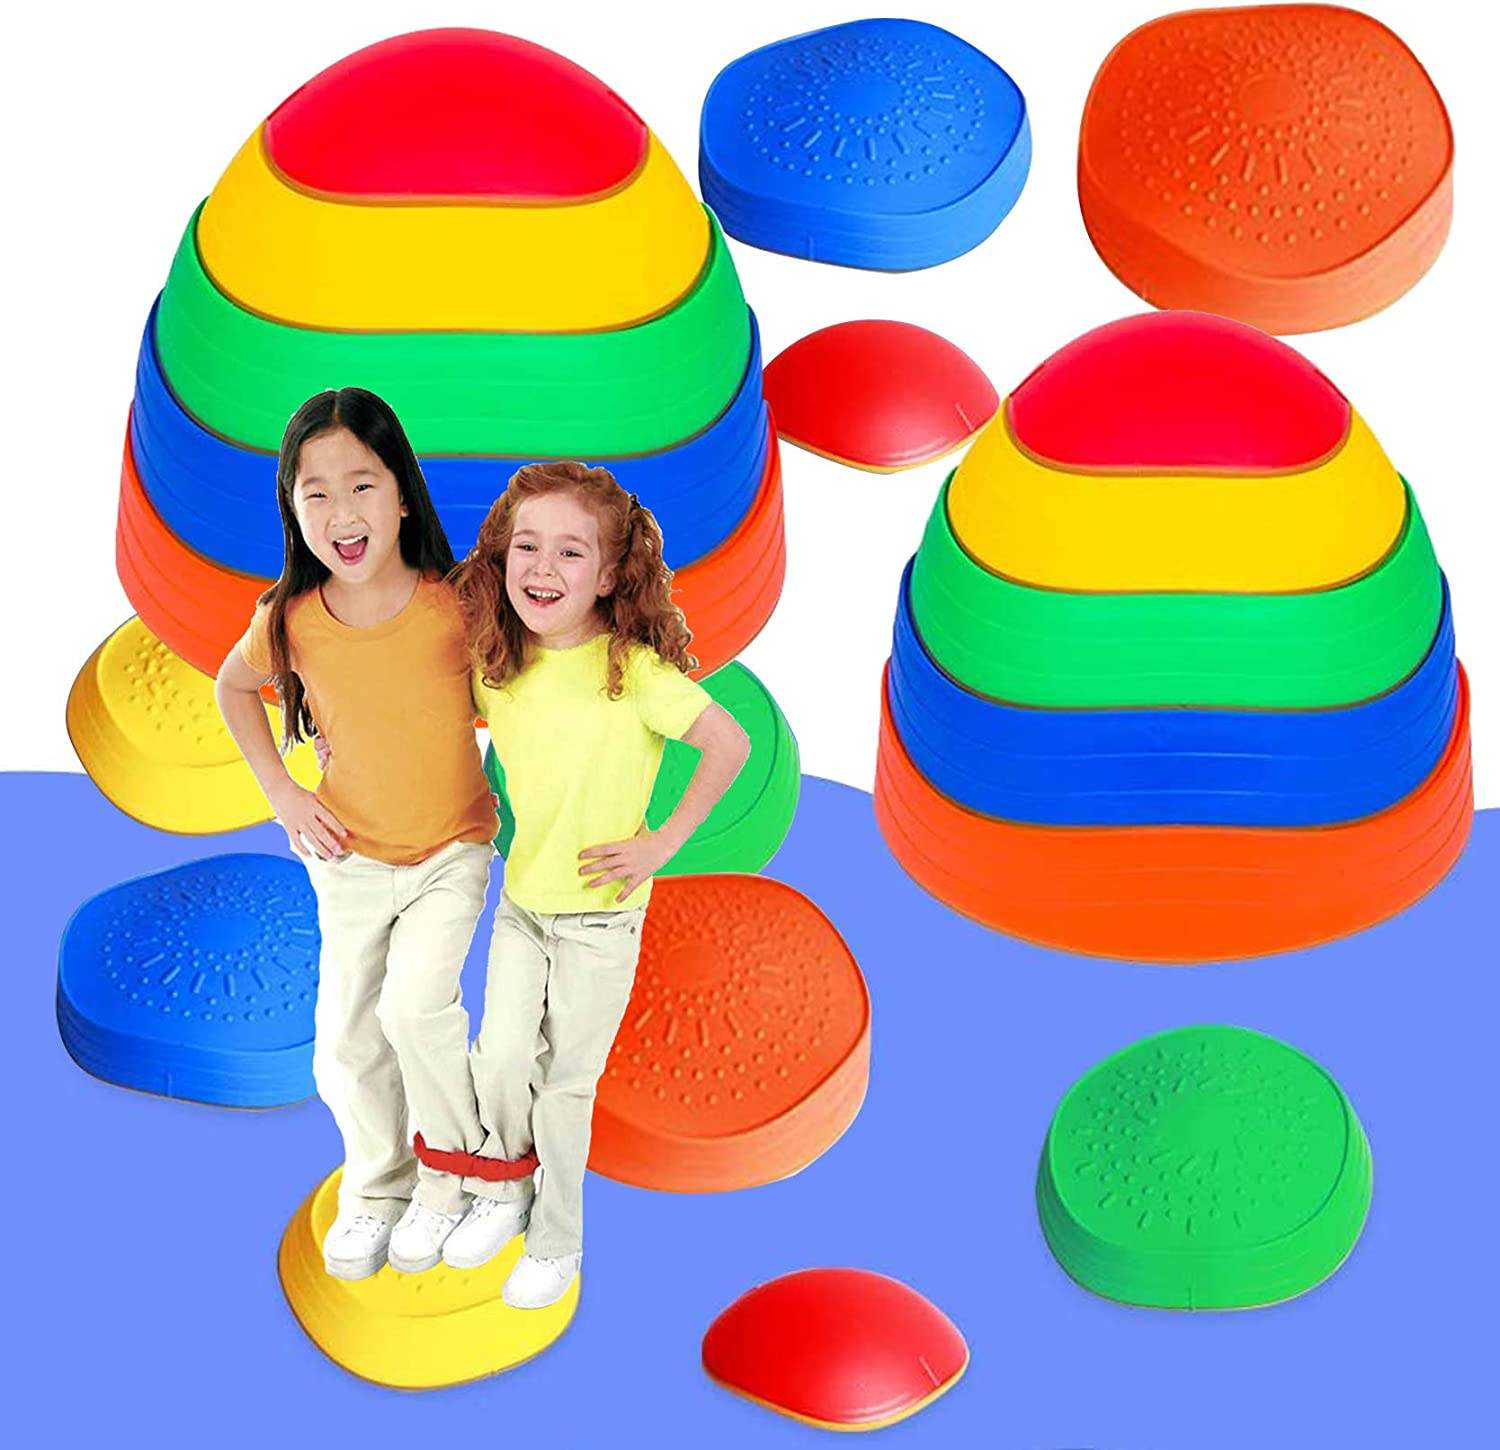 EDRLAITY 10 Pcs Stepping Stones for Kids, Balance Stepping Stones Obstacle Course, Indoor & Outdoor Play Toy Helps Build Coordination & Strength, Non-Slip Textured Surface and Rubber Edging